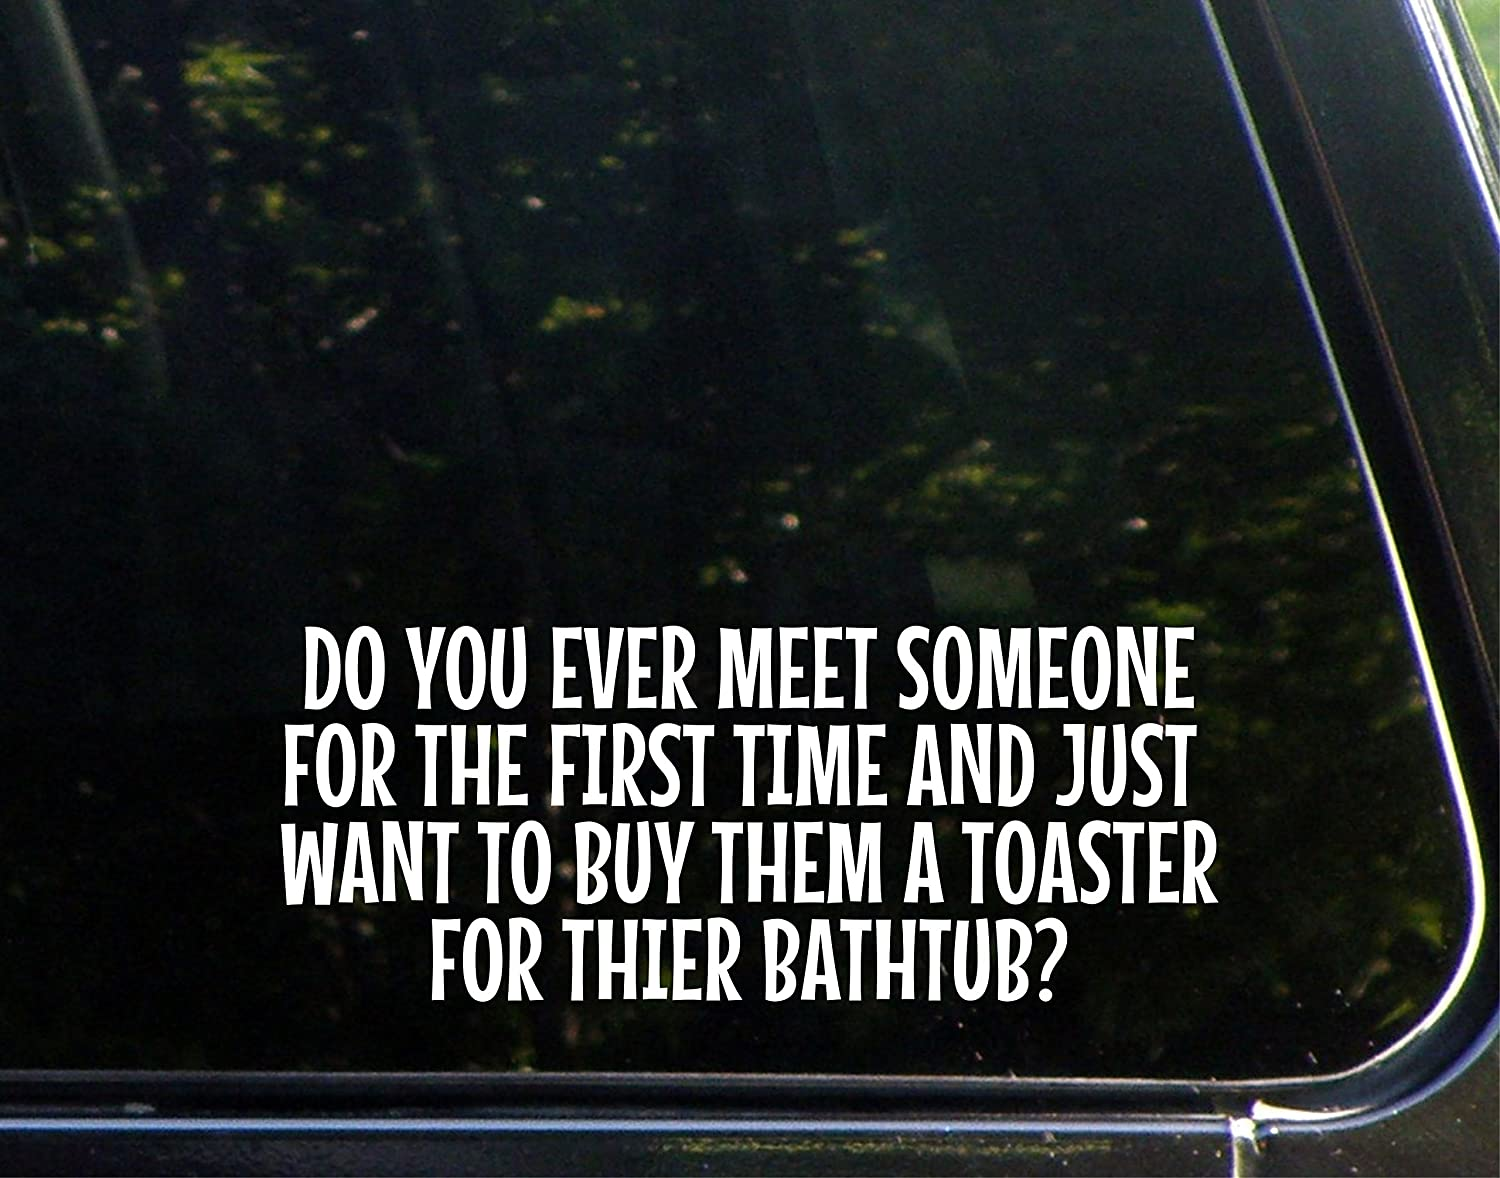 """Do You Ever Meet Someone For The First Time And Just Want To Buy Them A Toaster For Their Bathtub (8-3/4"""" x 3-1/2"""") Die Cut Decal Bumper Sticker For Windows, Cars, Trucks, Etc."""